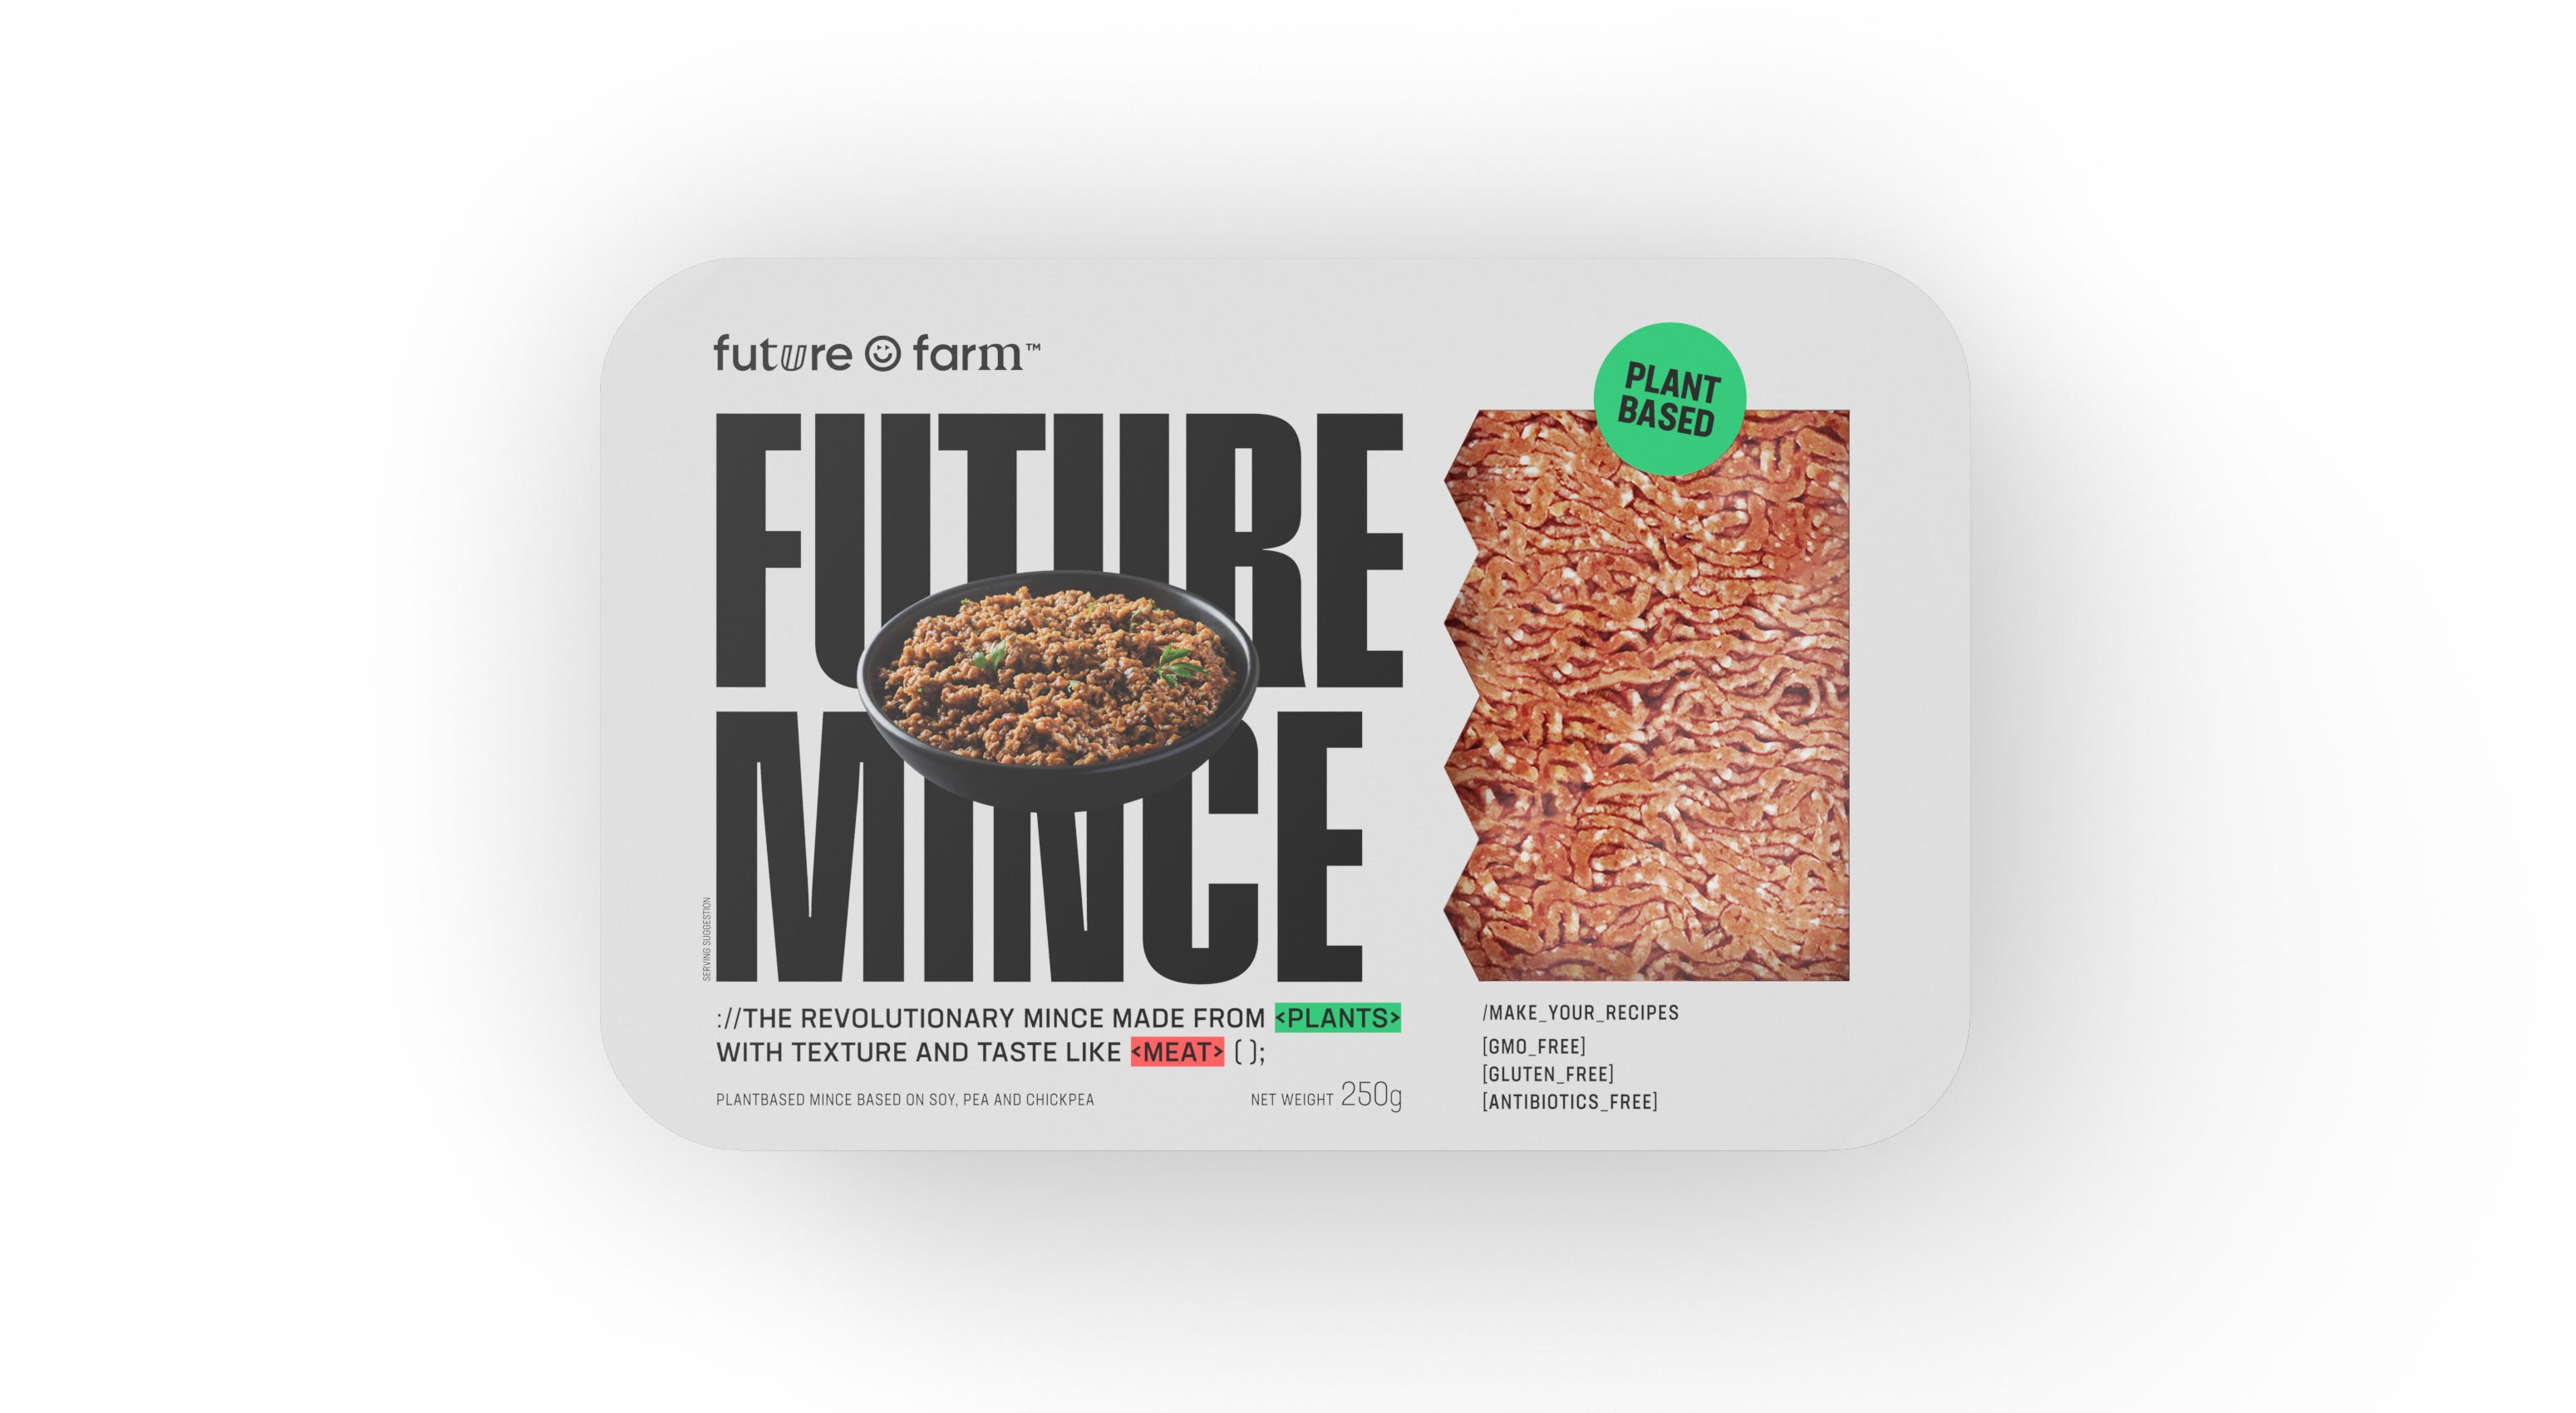 Future Farms' Pick up the Future mince is just £3.30 at Sainsbury's